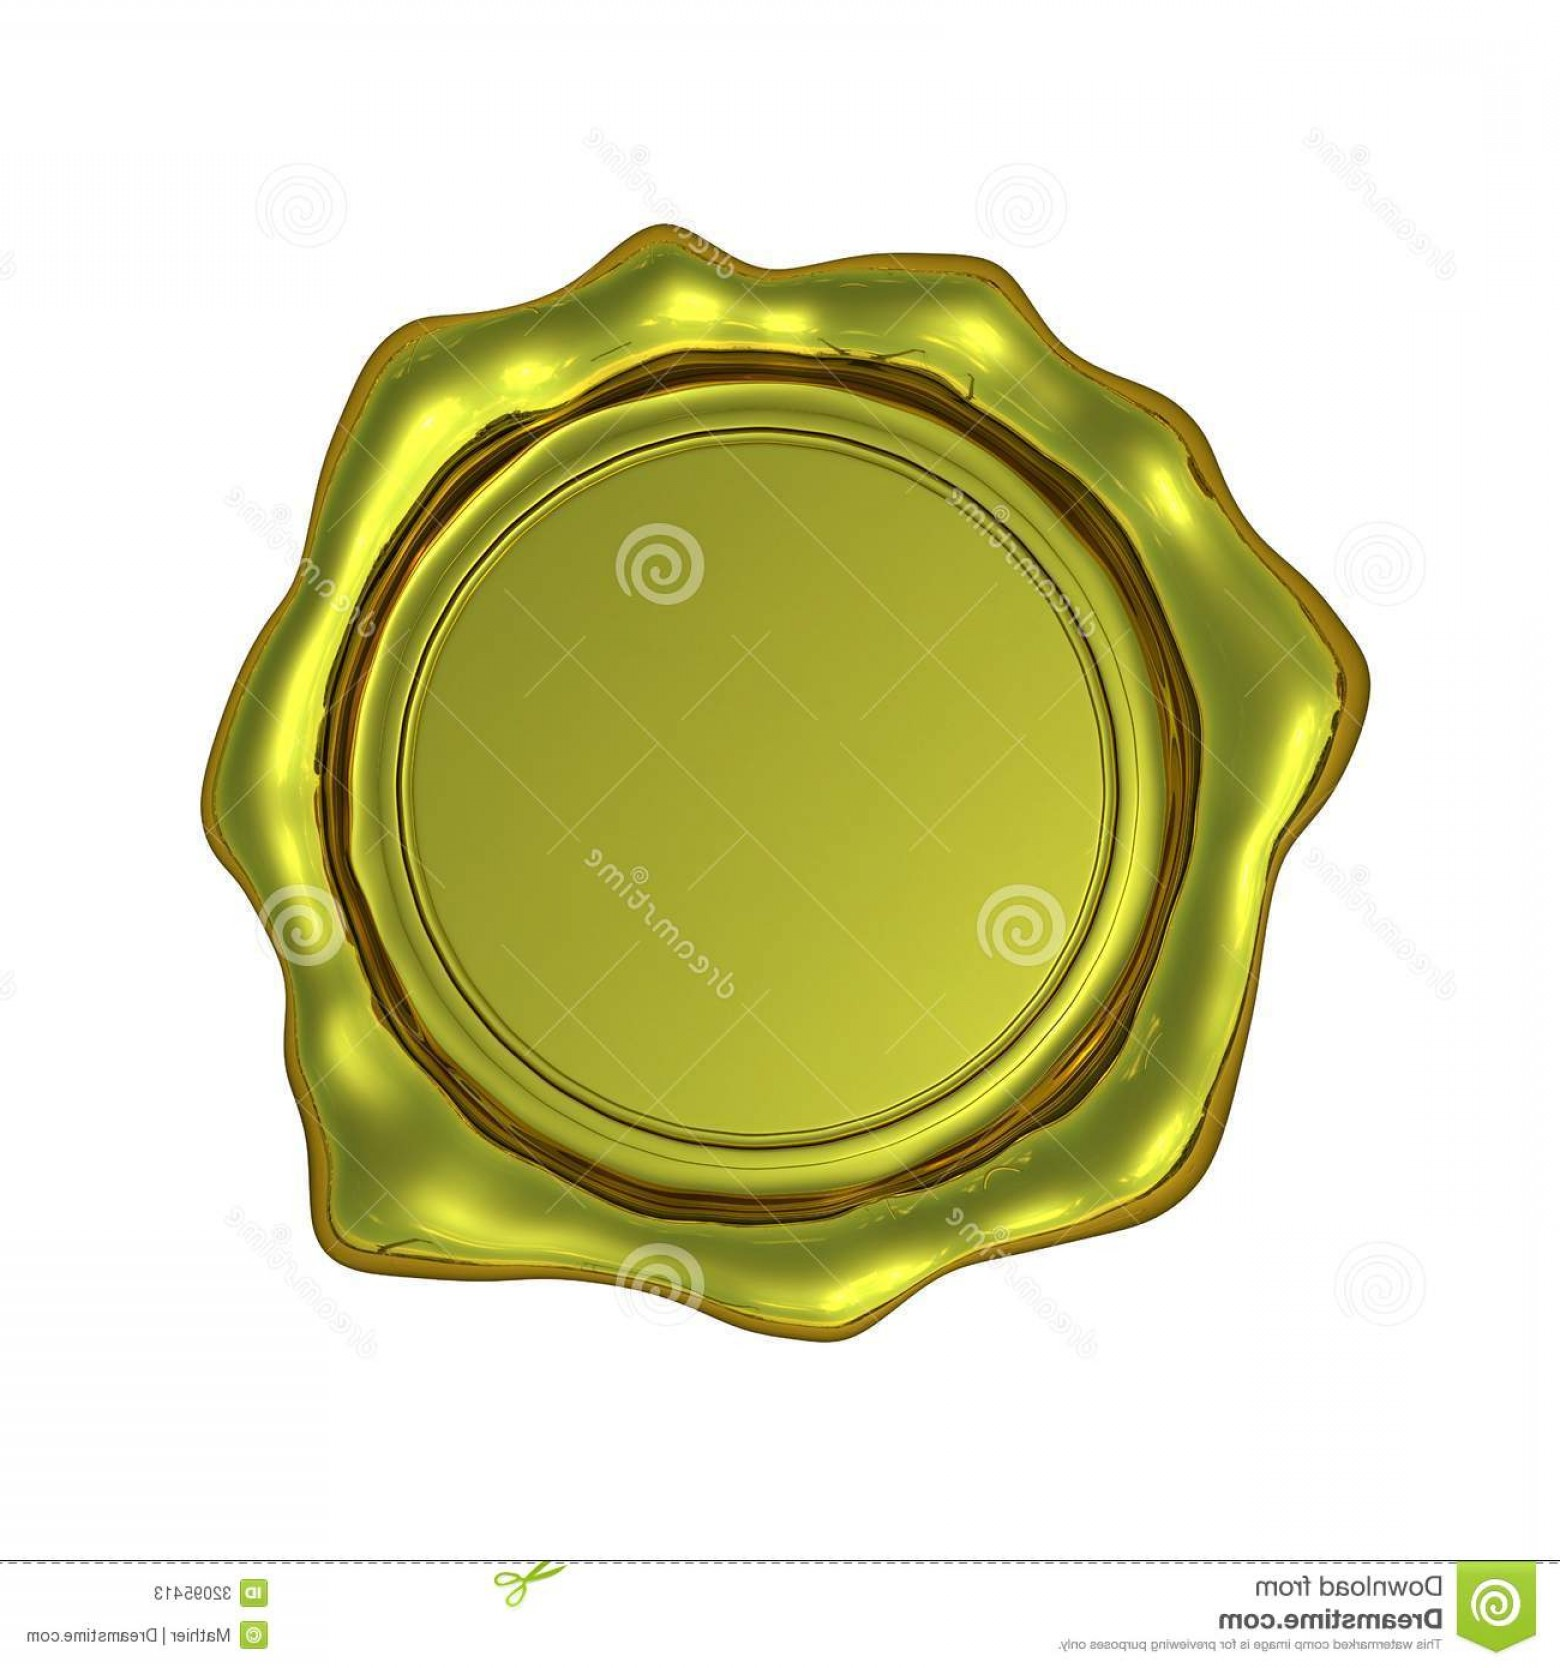 1560x1668 Stock Photos Realistic Gold Seal Isolated Blank White Transparent